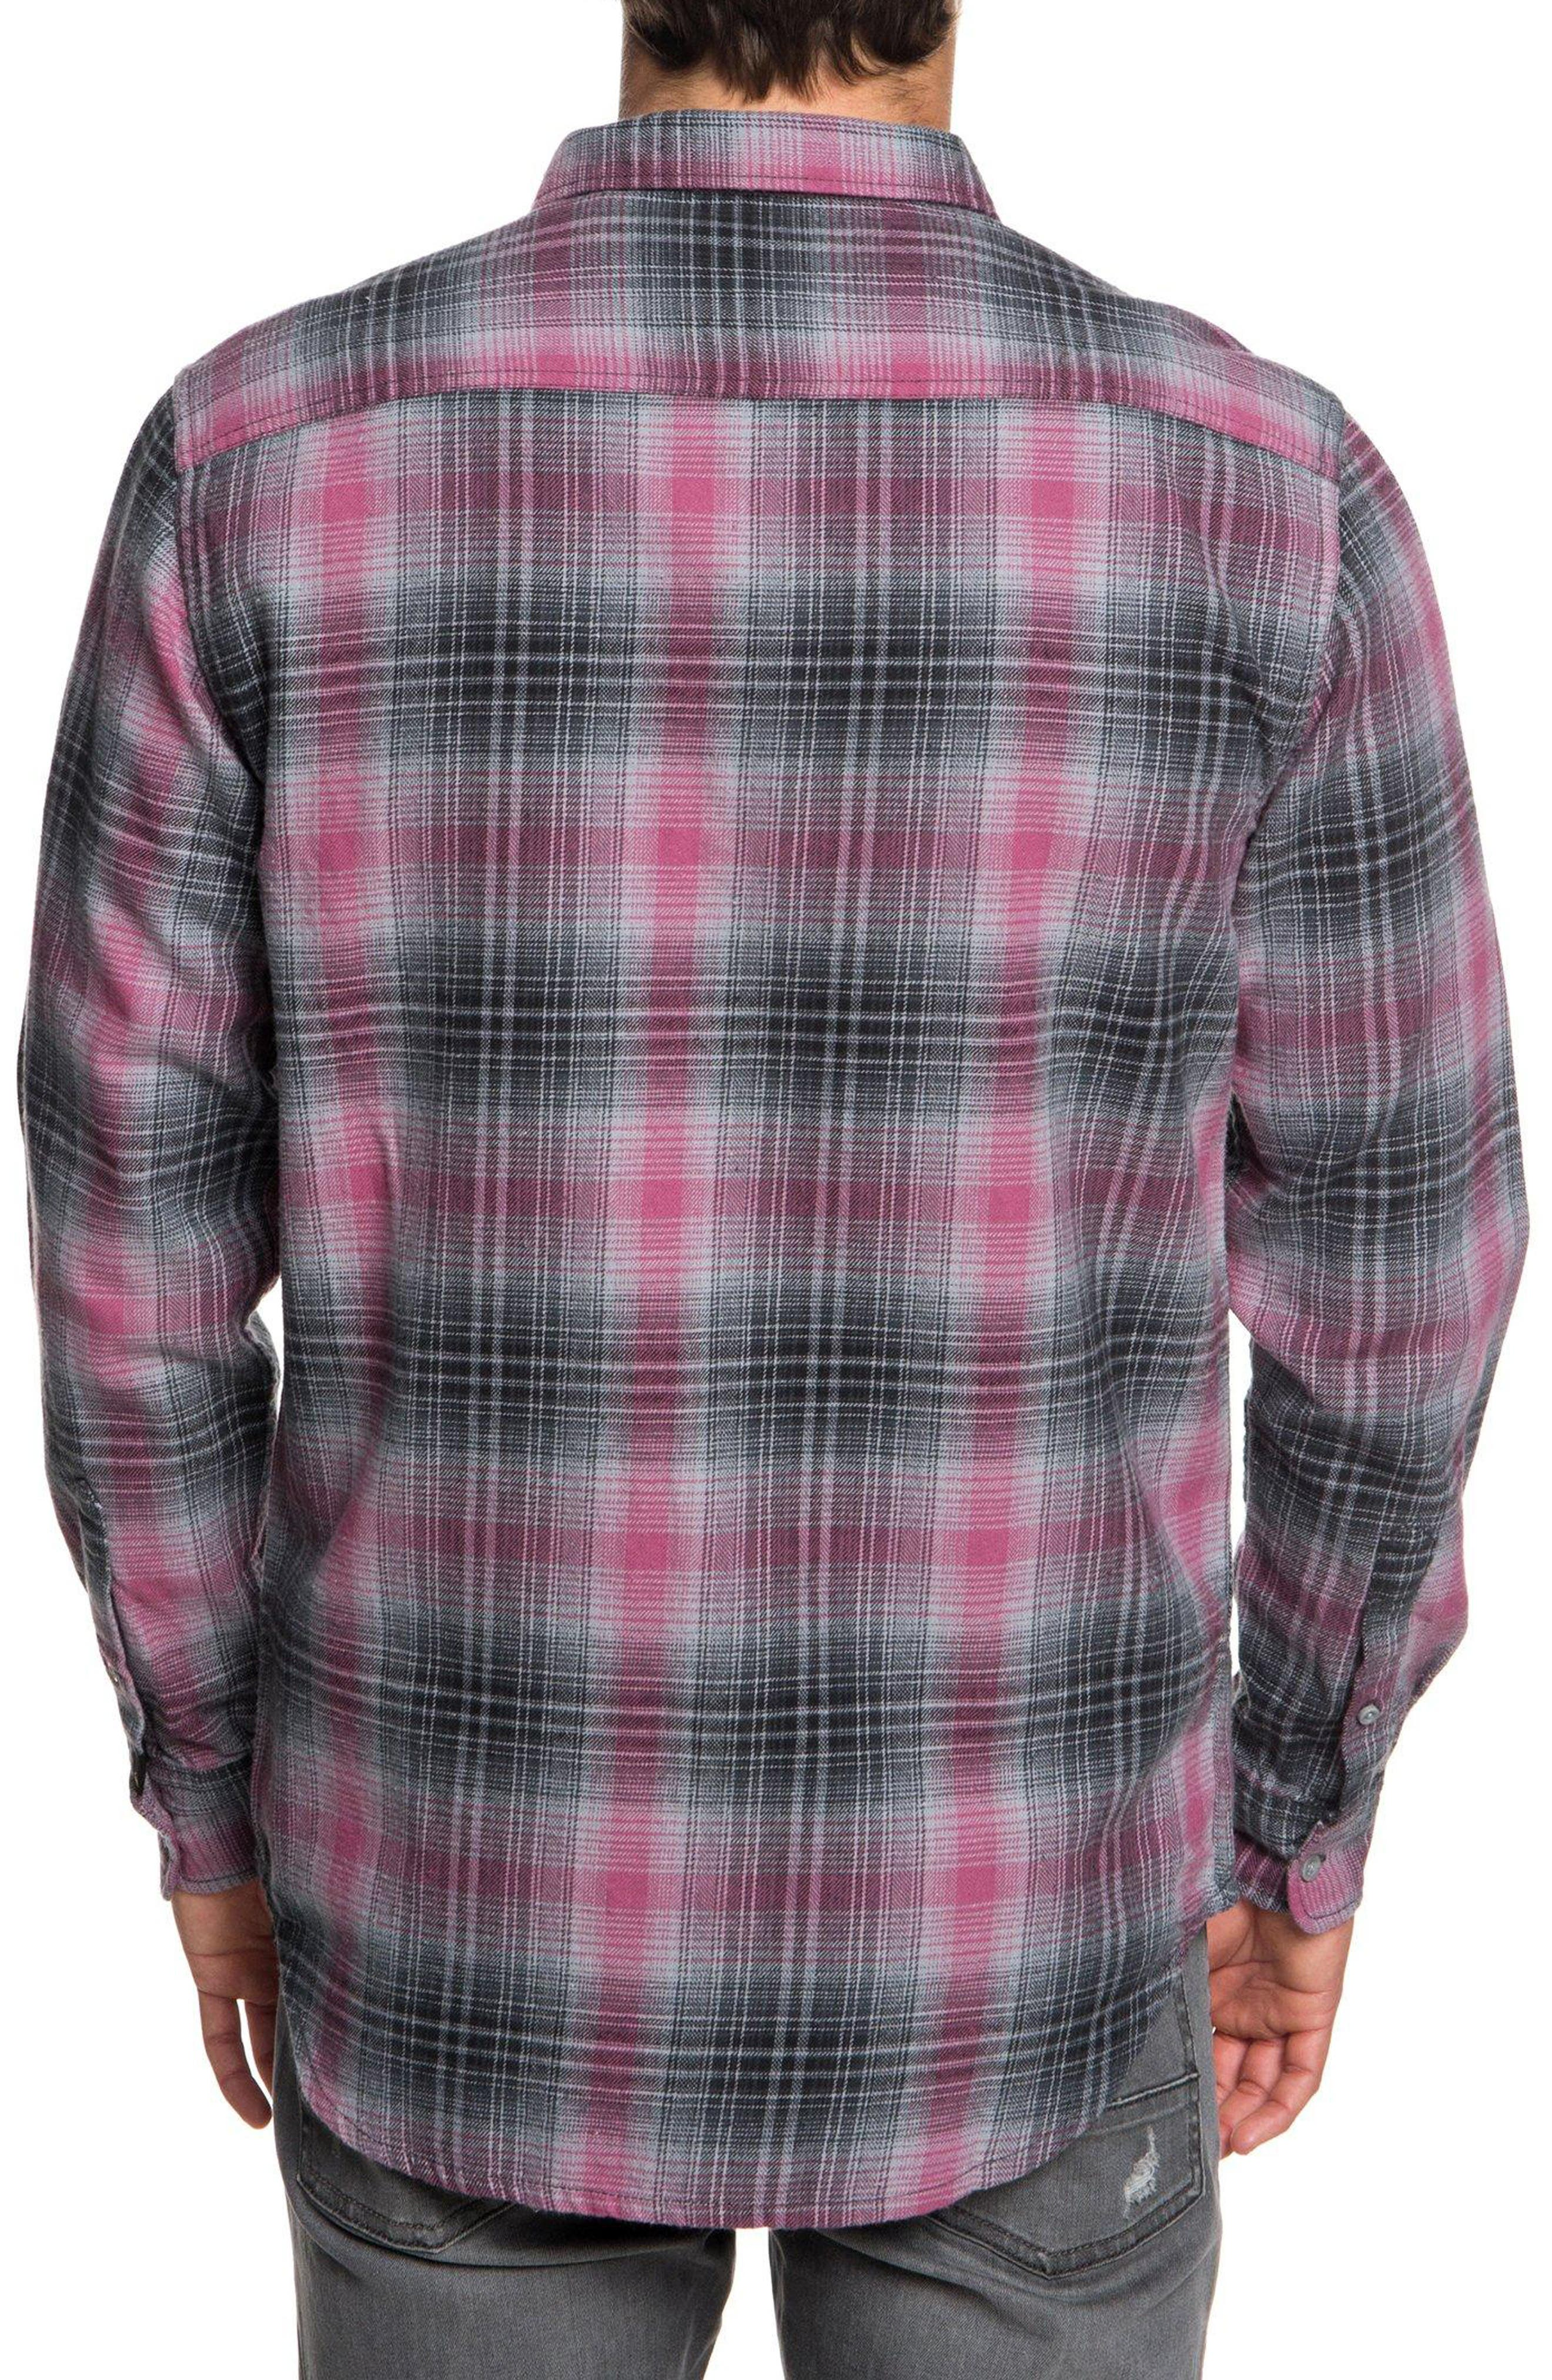 Fatherfly Flannel Shirt,                             Alternate thumbnail 2, color,                             TARMAC FATHERFLY CHECK